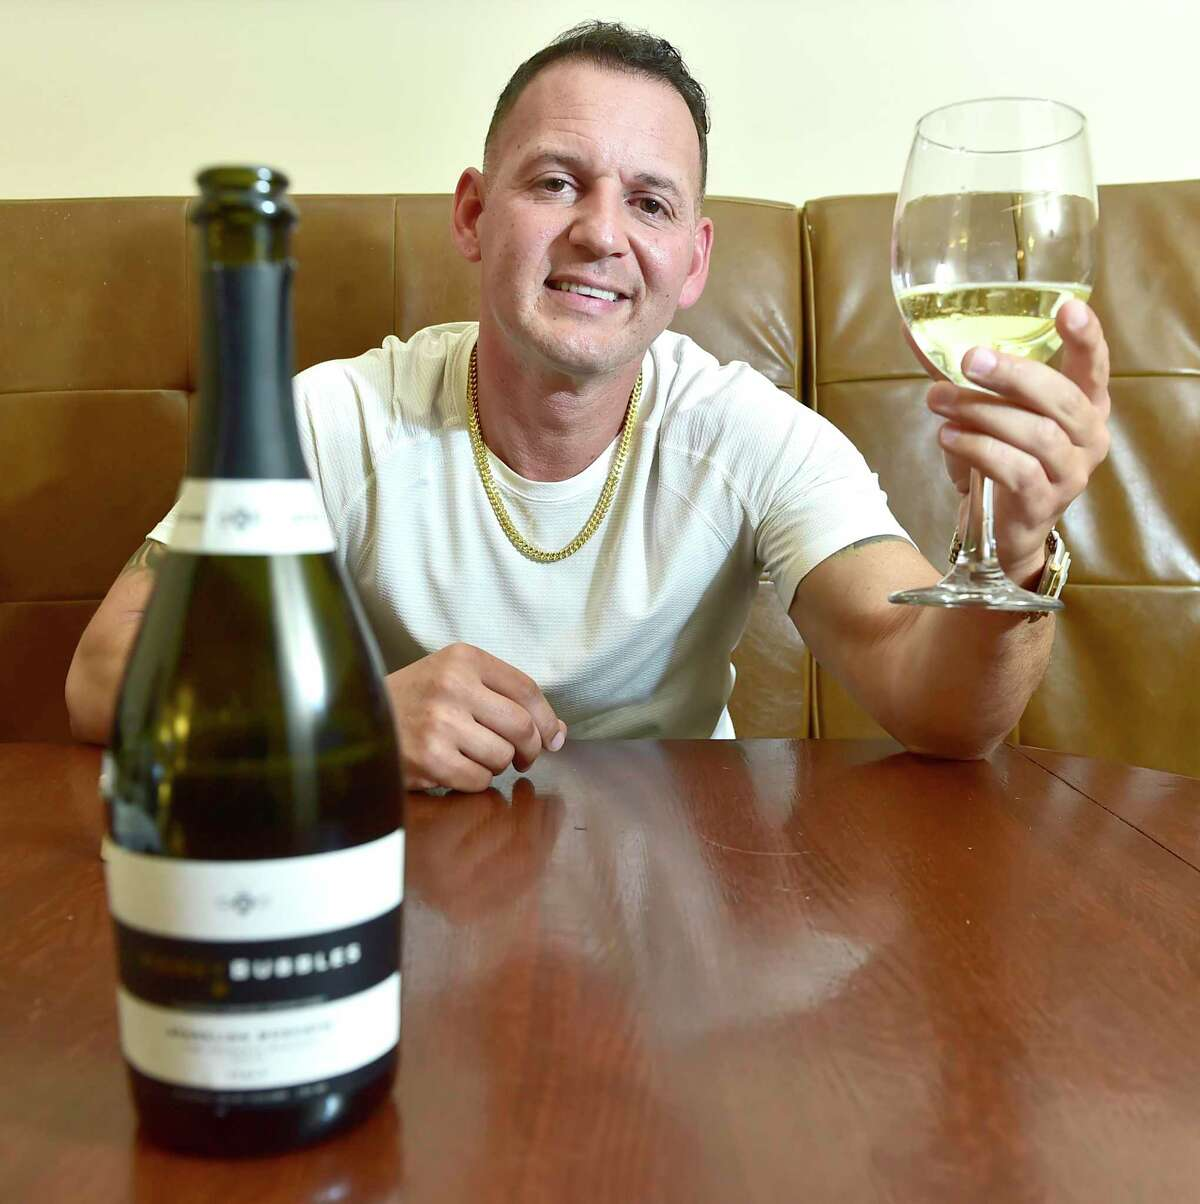 Michael Del Vecchio, brand manager and partner for the Connecticut sales of Honey Bubbles sparkling moscato wine